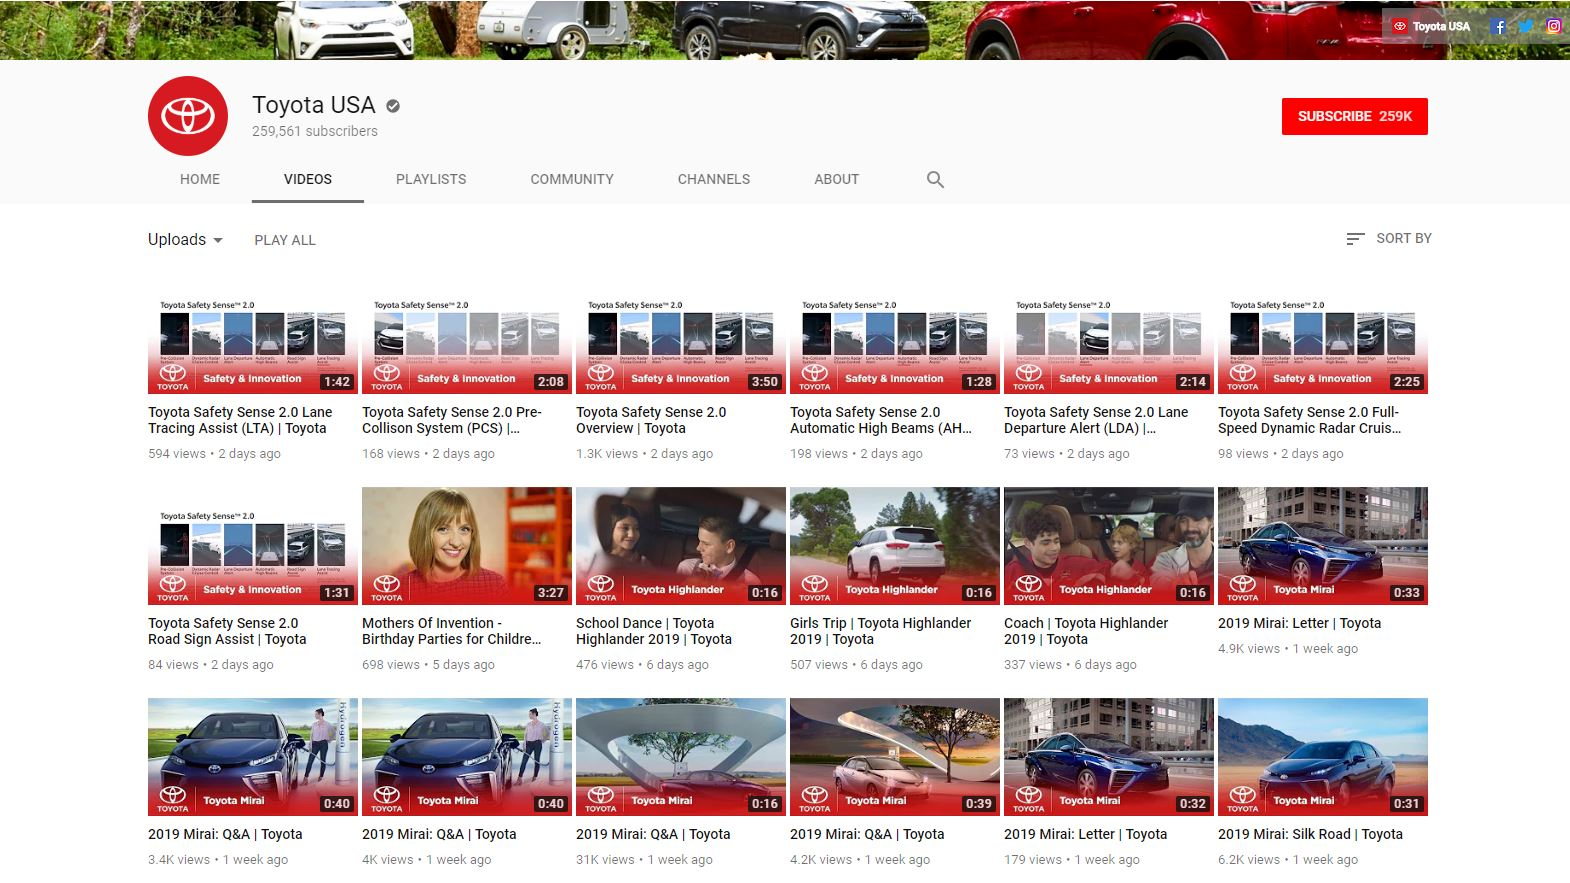 YouTube SEO Video Content Strategy - Toyota - Chainlink Relationship Marketing